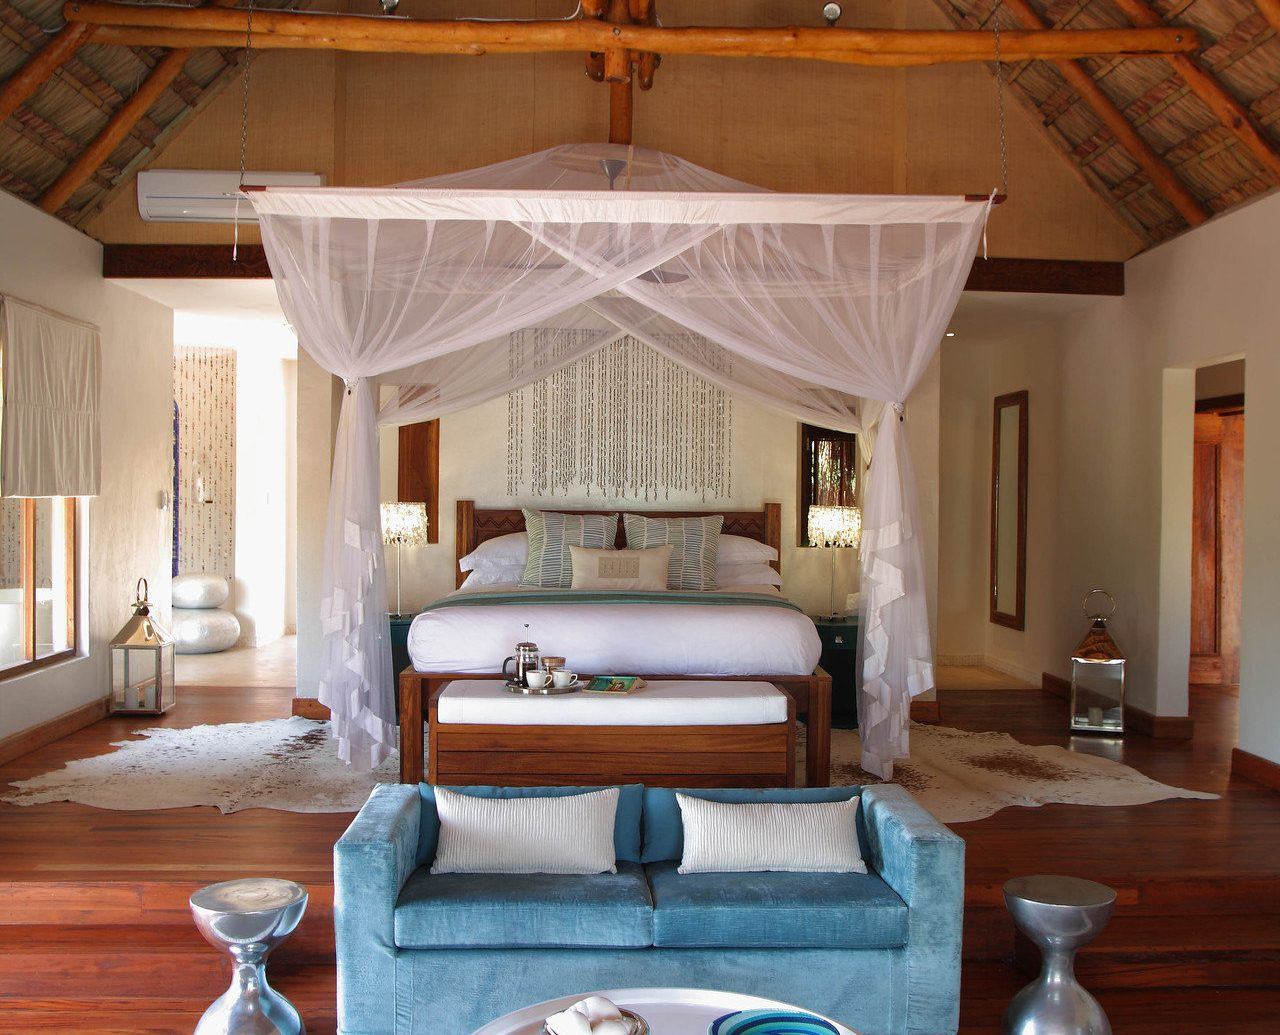 bed Bedroom canopy canopy bed charming cozy homey Hotels hut Luxury Rustic indoor floor room ceiling property house estate swimming pool Living home living room interior design cottage Villa mansion Design Resort farmhouse furniture